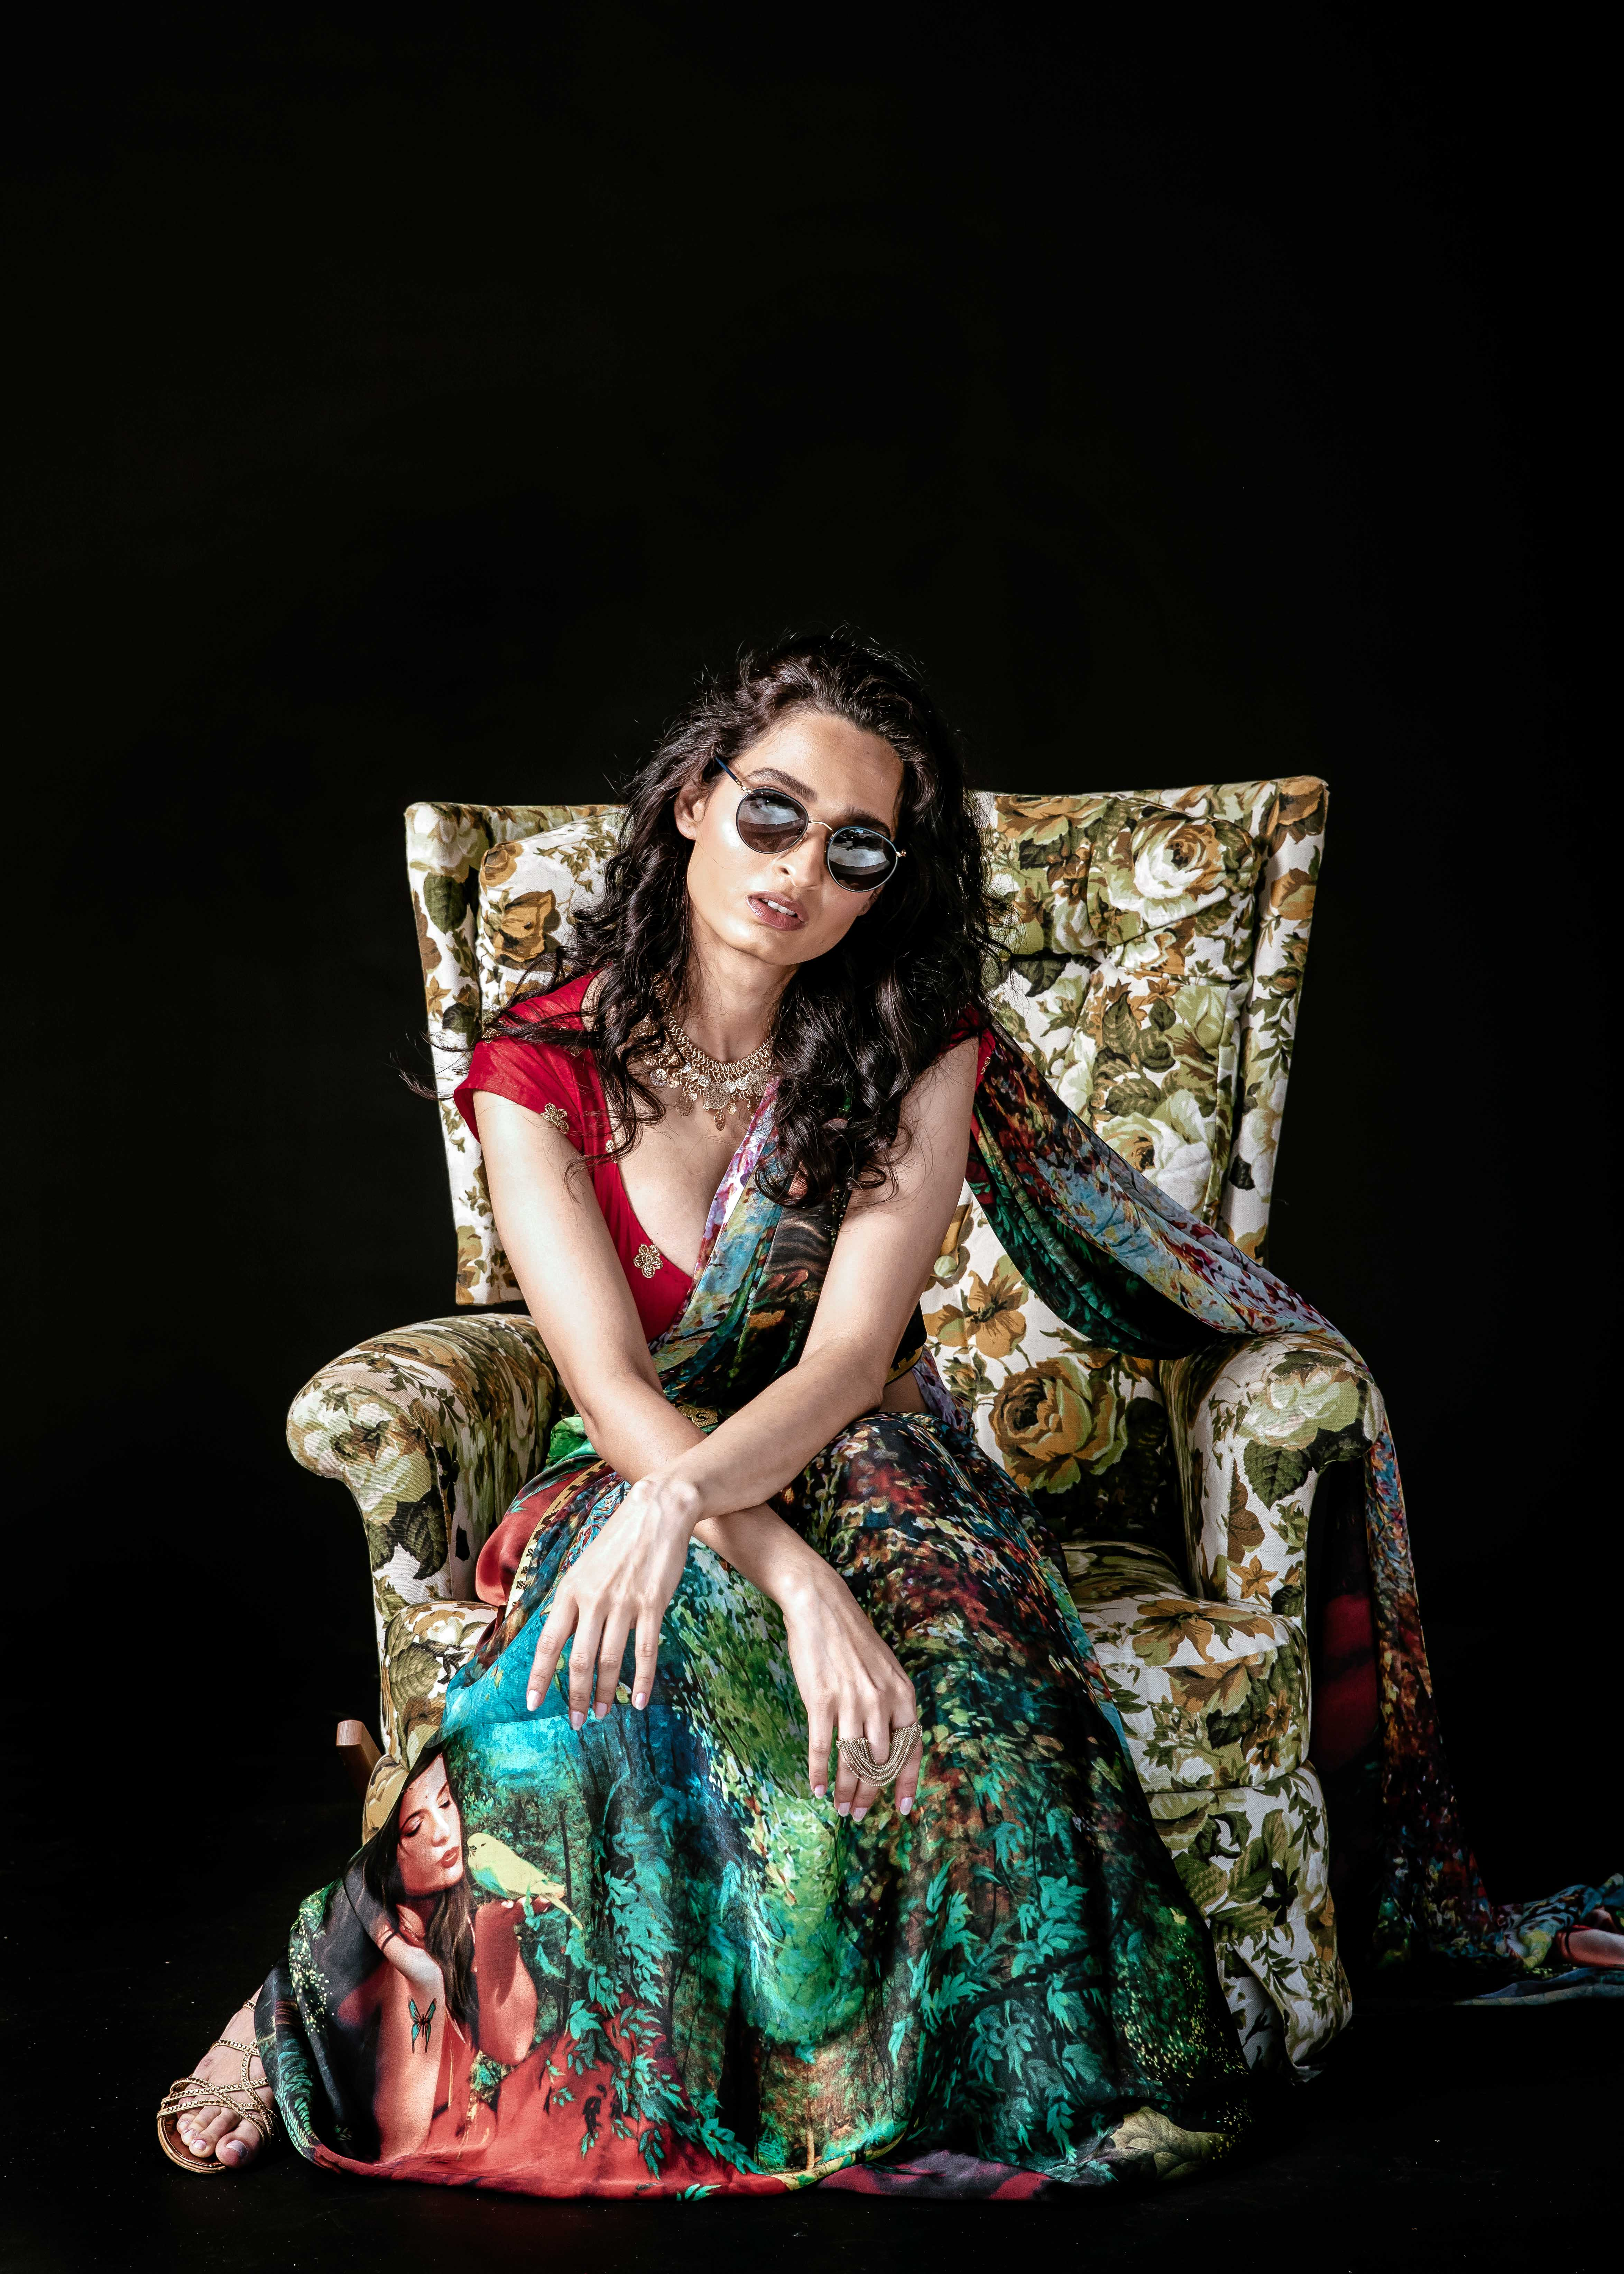 green saree with red blouse and yellow off-white belt sitting on floral chair indian outfit style wearing sunglasses